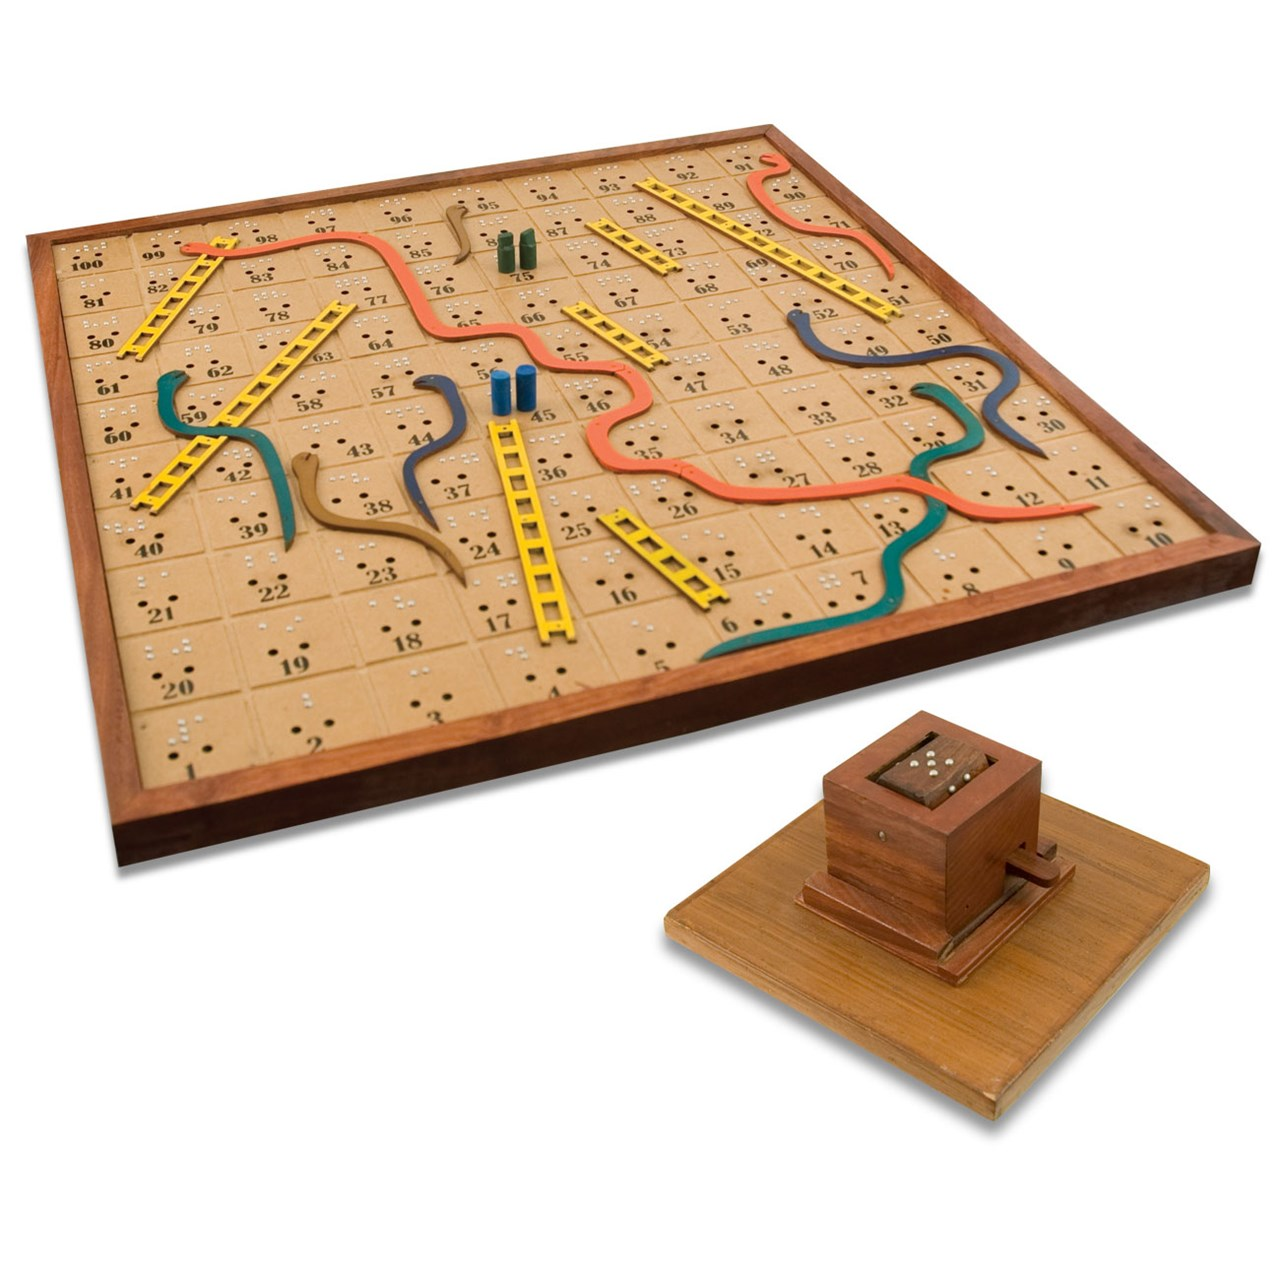 Maxiaids Snakes And Ladders Board Game For The Blind